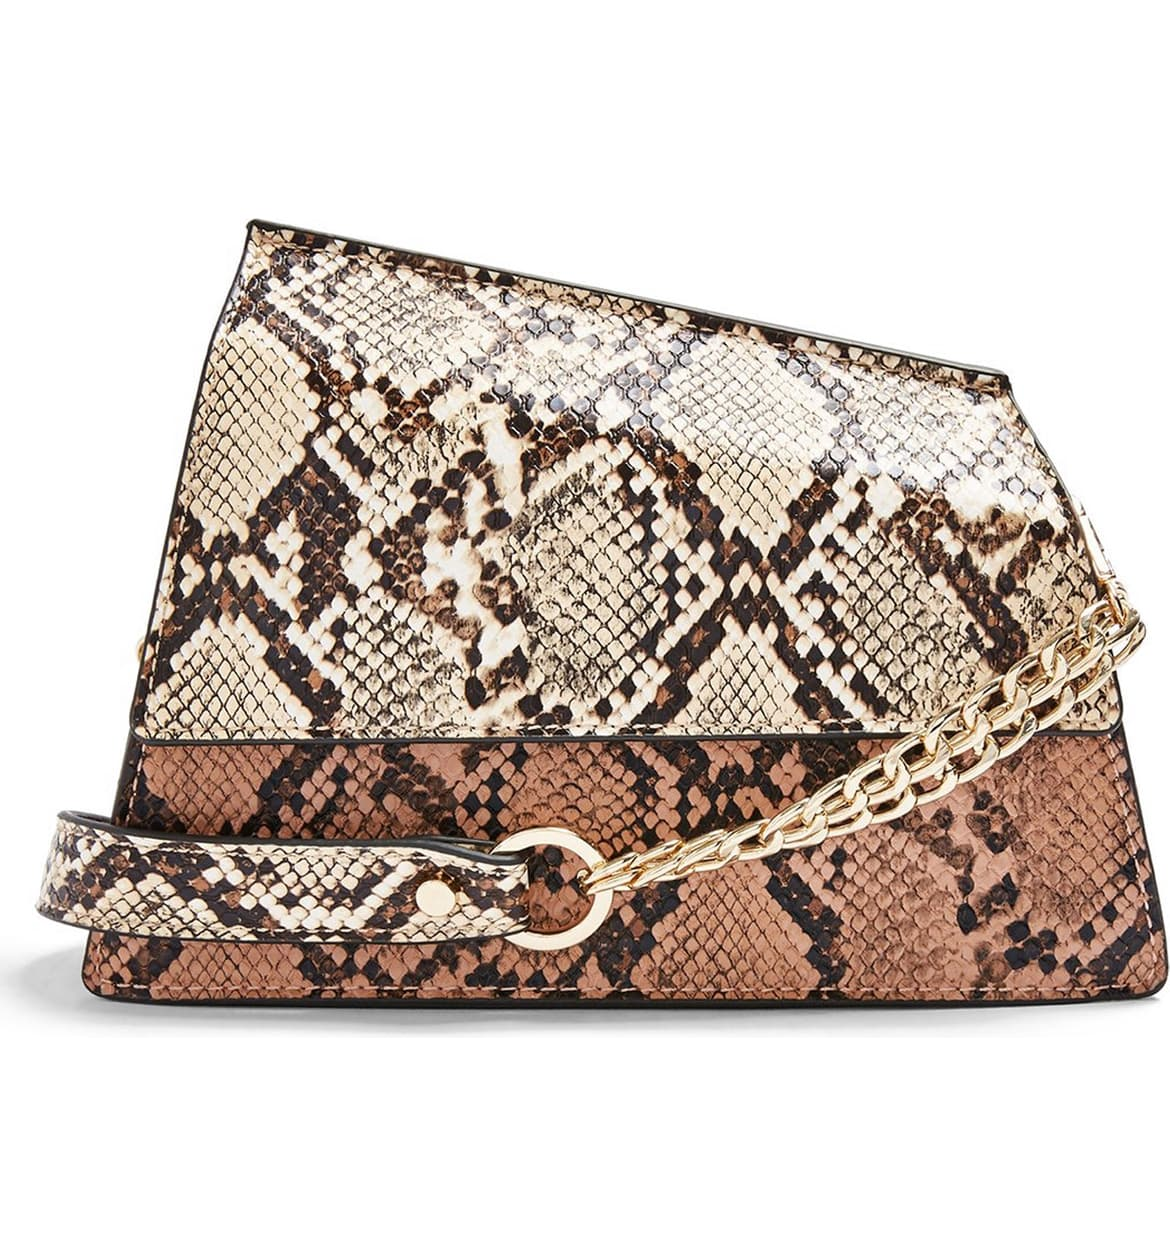 This faux-leather shoulder bag is fierce to the max with its two-tone snakeskin detailing, asymmetrical shape and chain-accent strap. $40 (Image: Nordstrom){ }